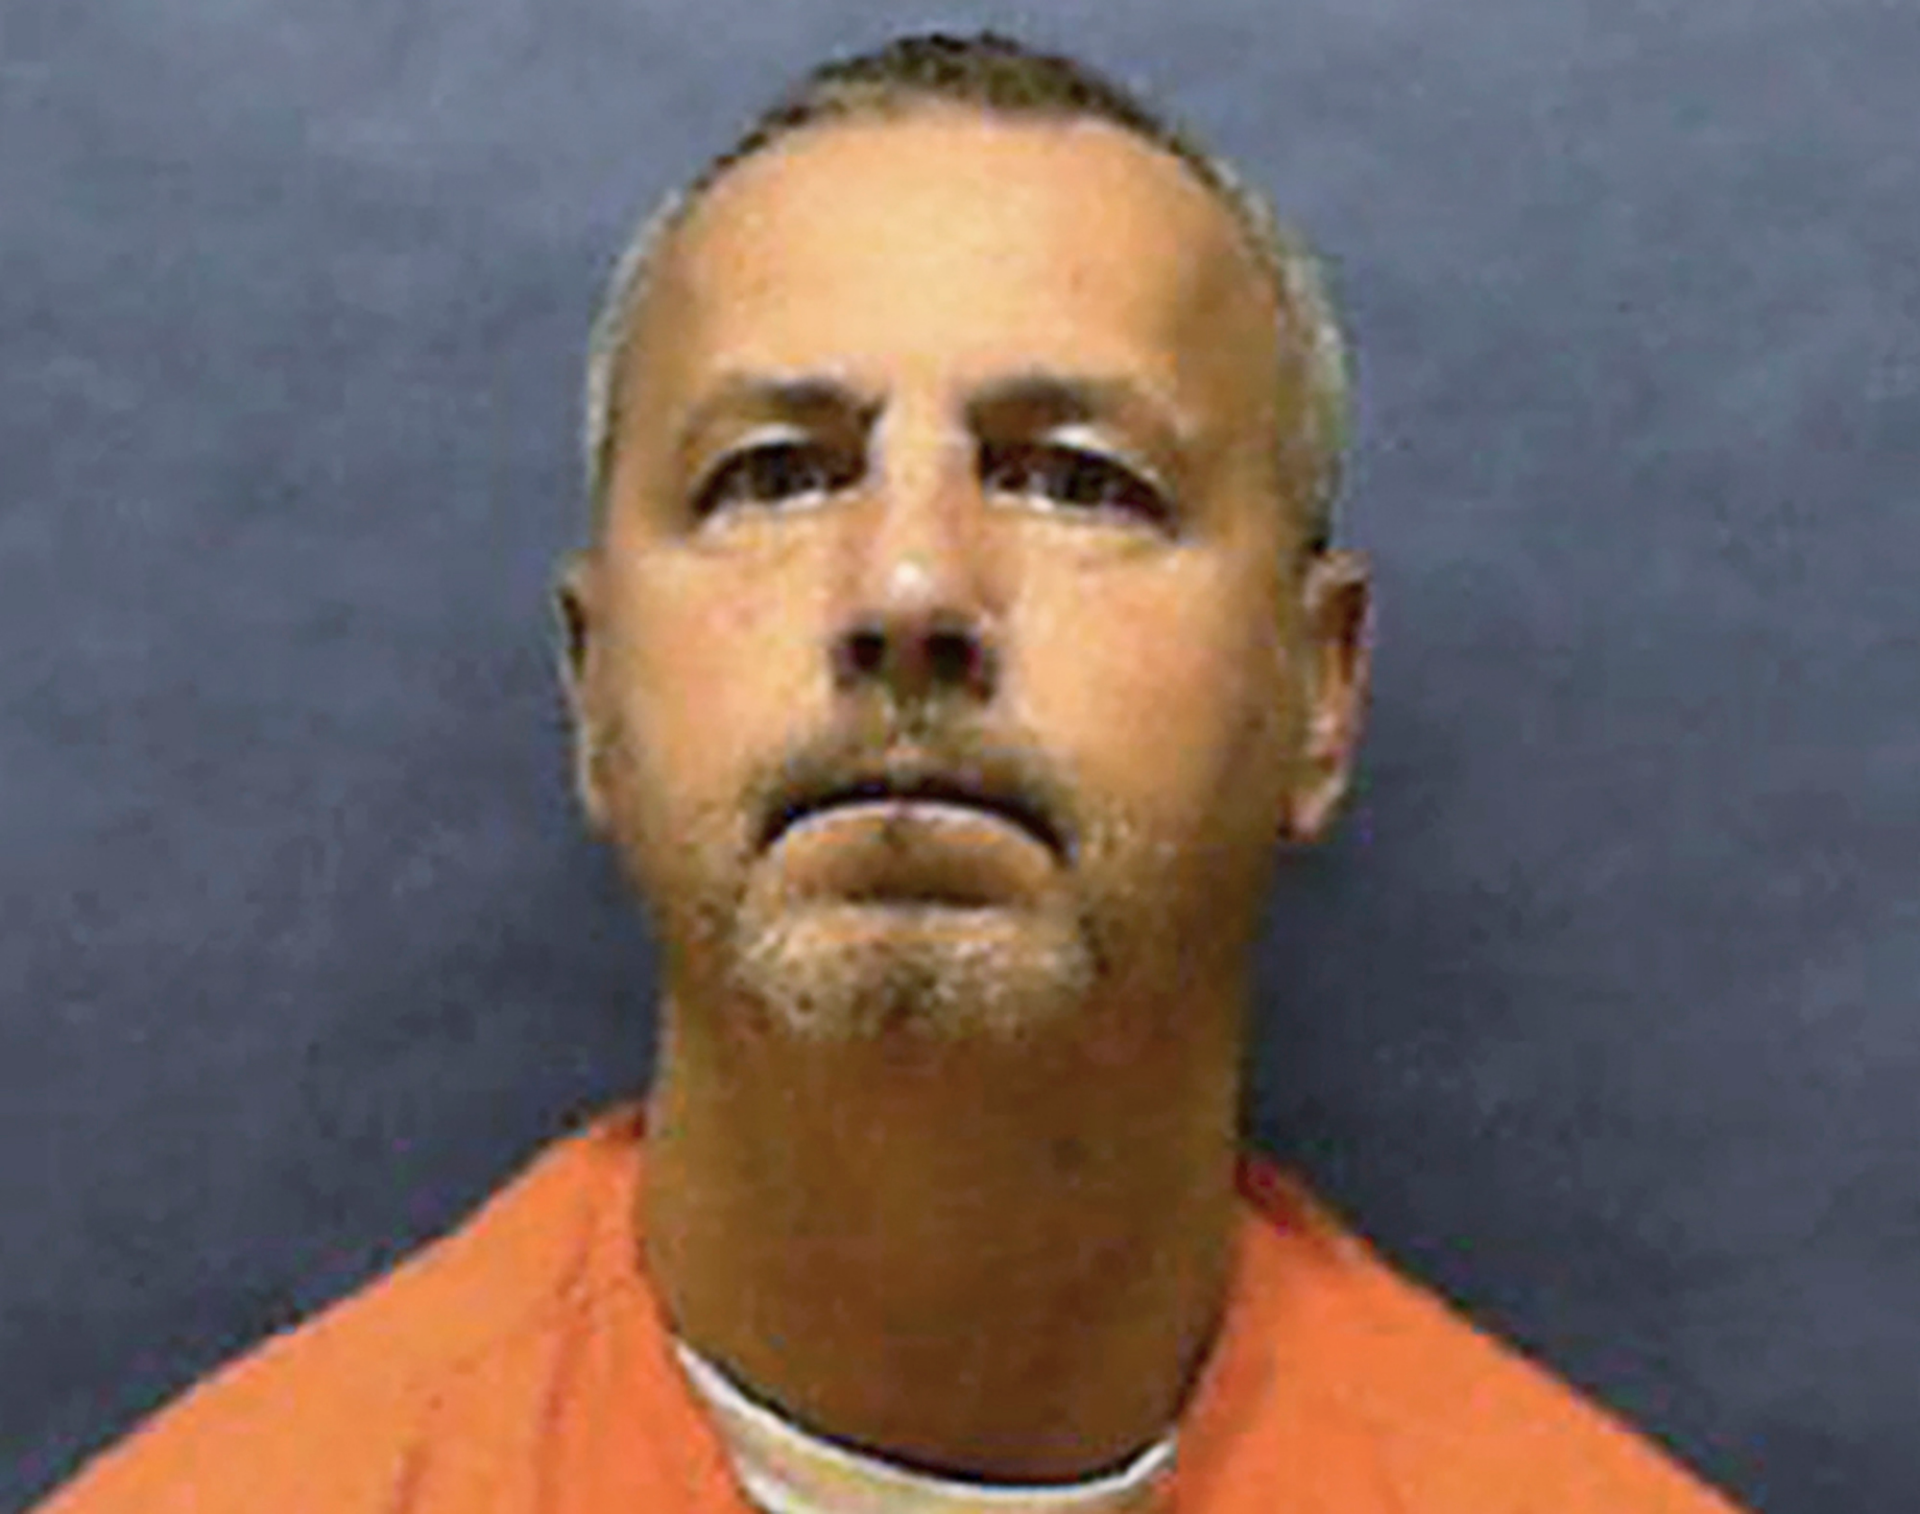 Serial killer who targeted gay men executed in Florida after eating hearty last meal